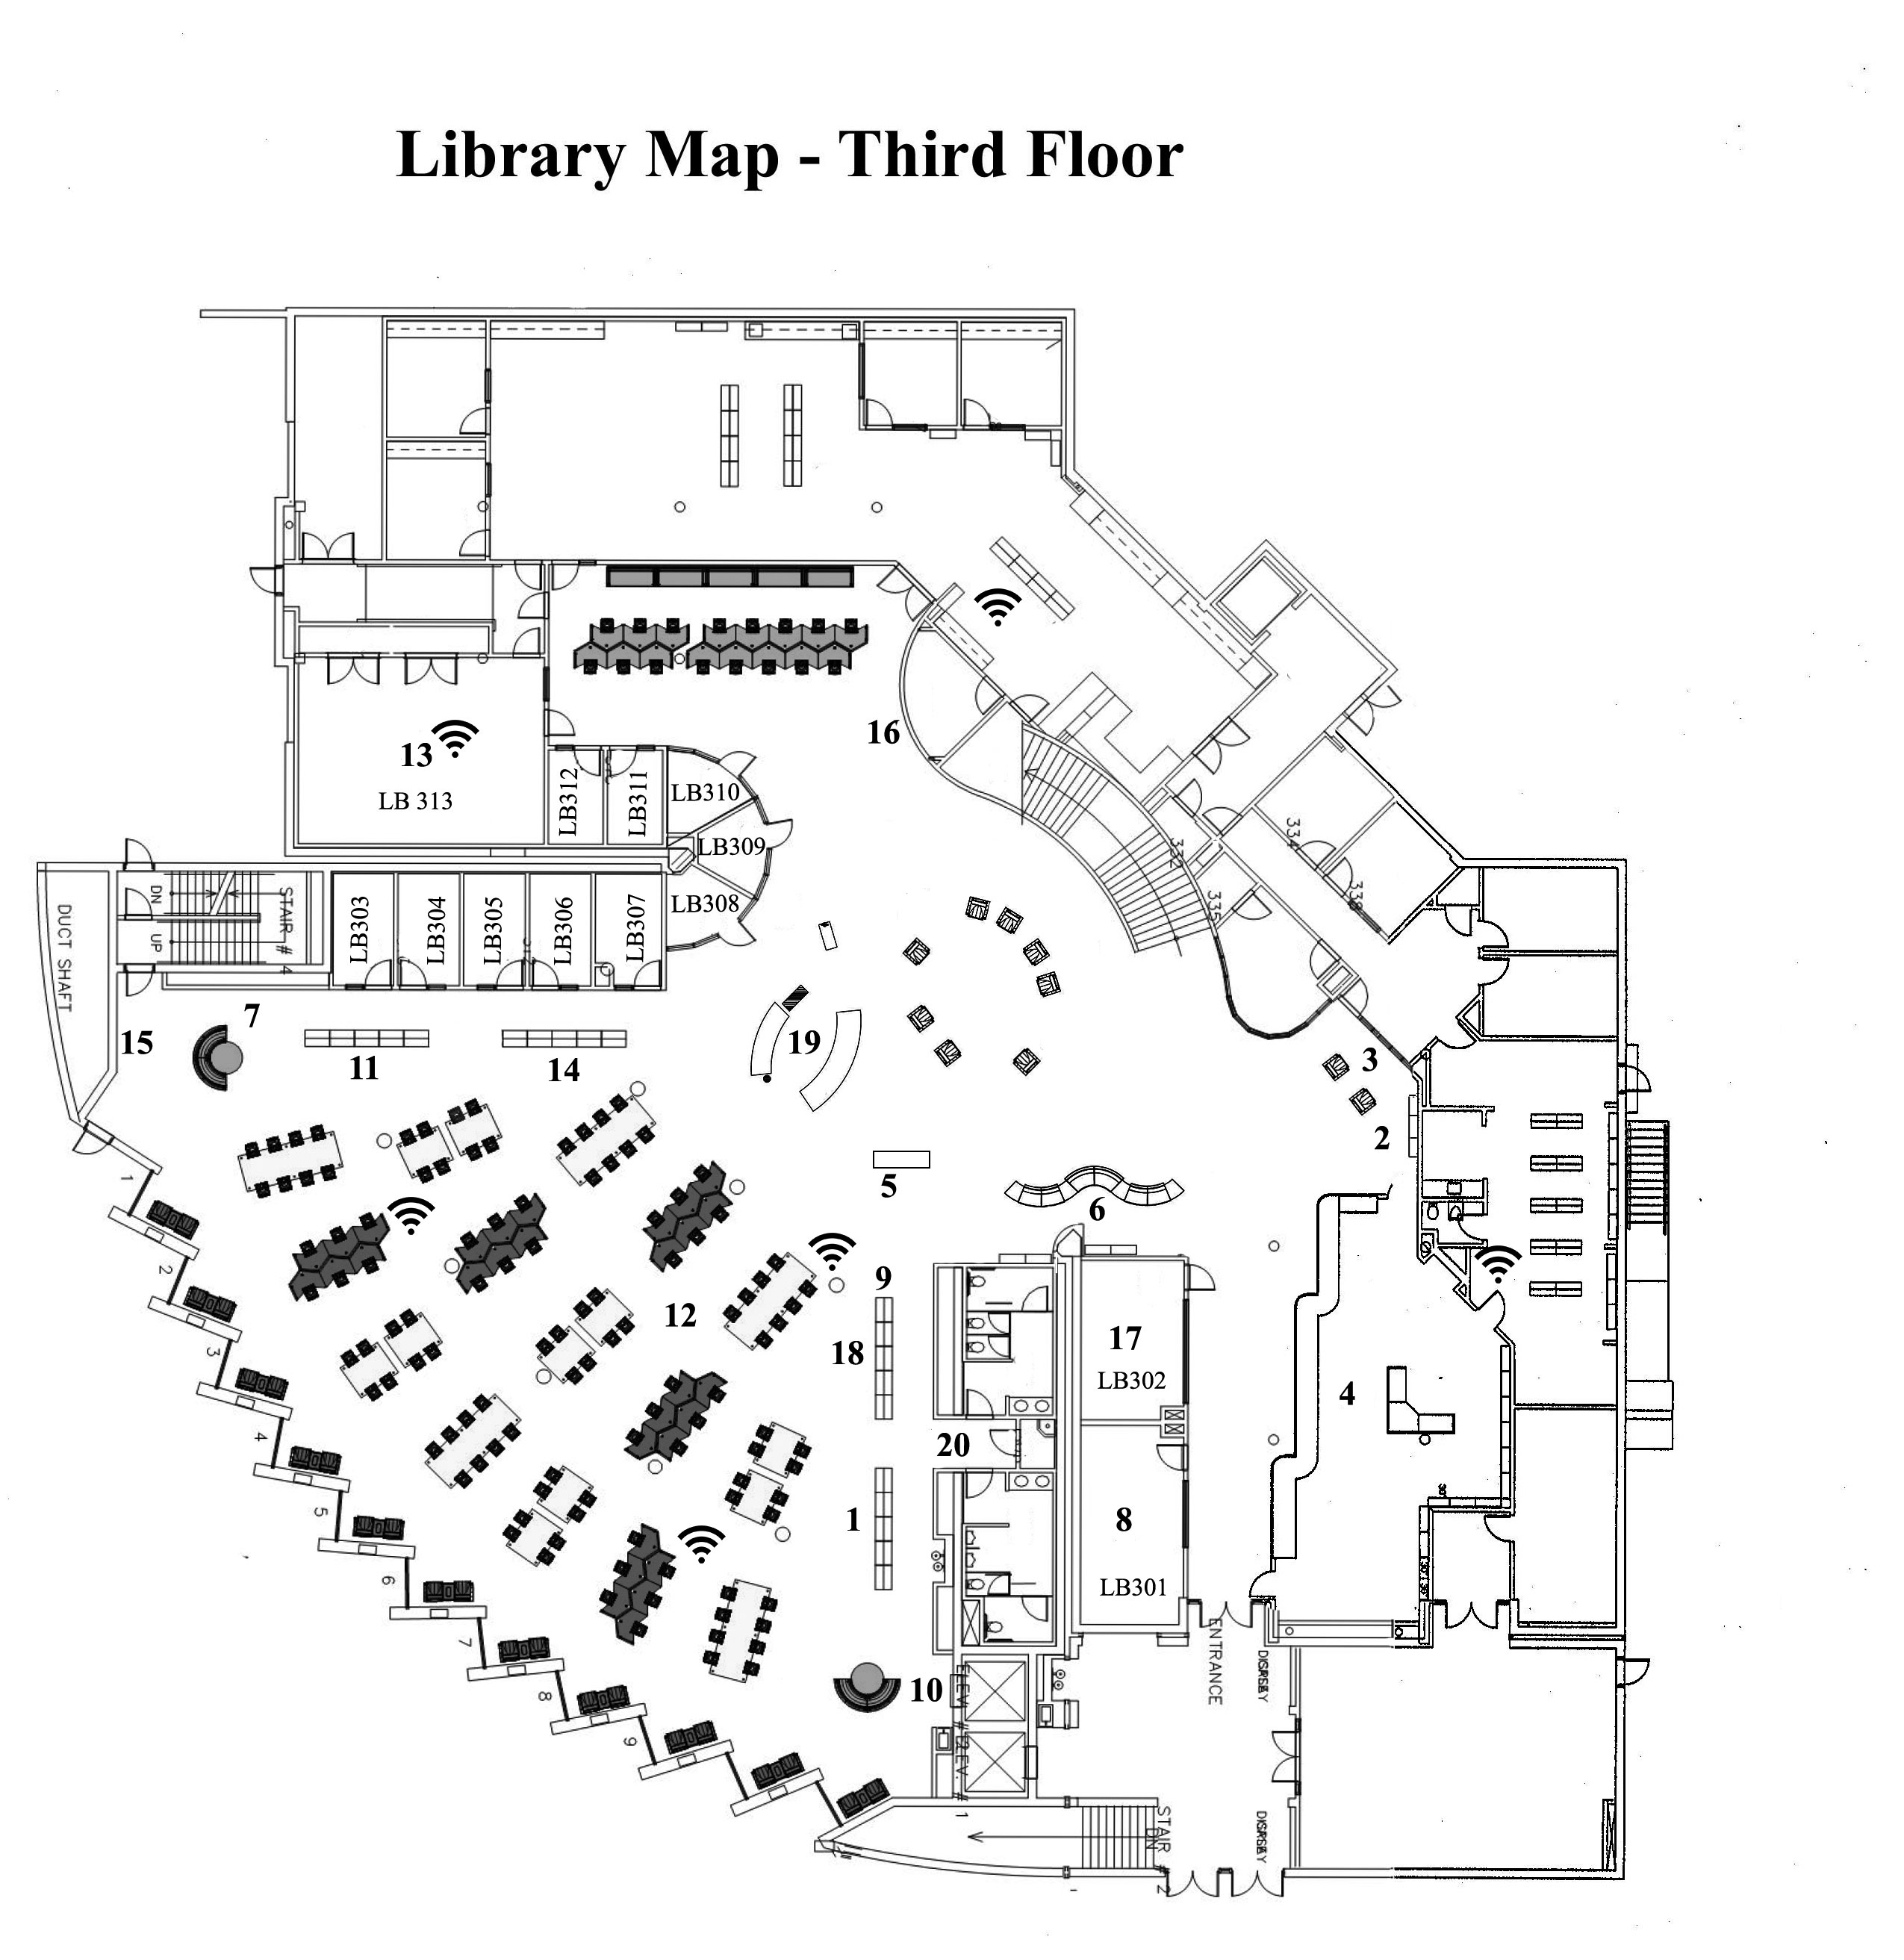 Floor Plan of Library 3rd Floor